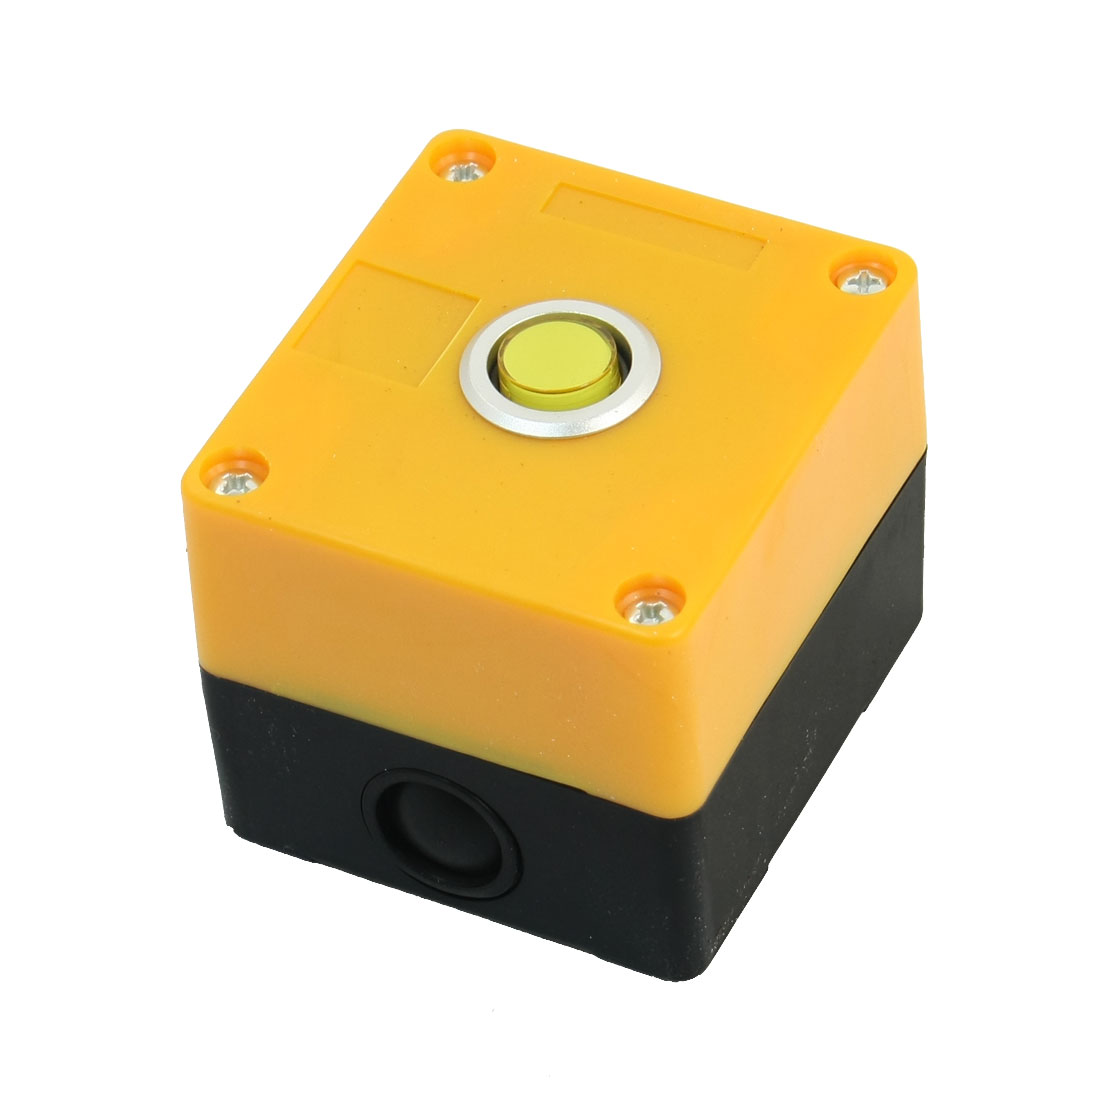 AC220V 5A SPDT 1NO 1NC Self-Locking Yellow Light Rectangle Plastic Case Push Button Station Switch Control Box